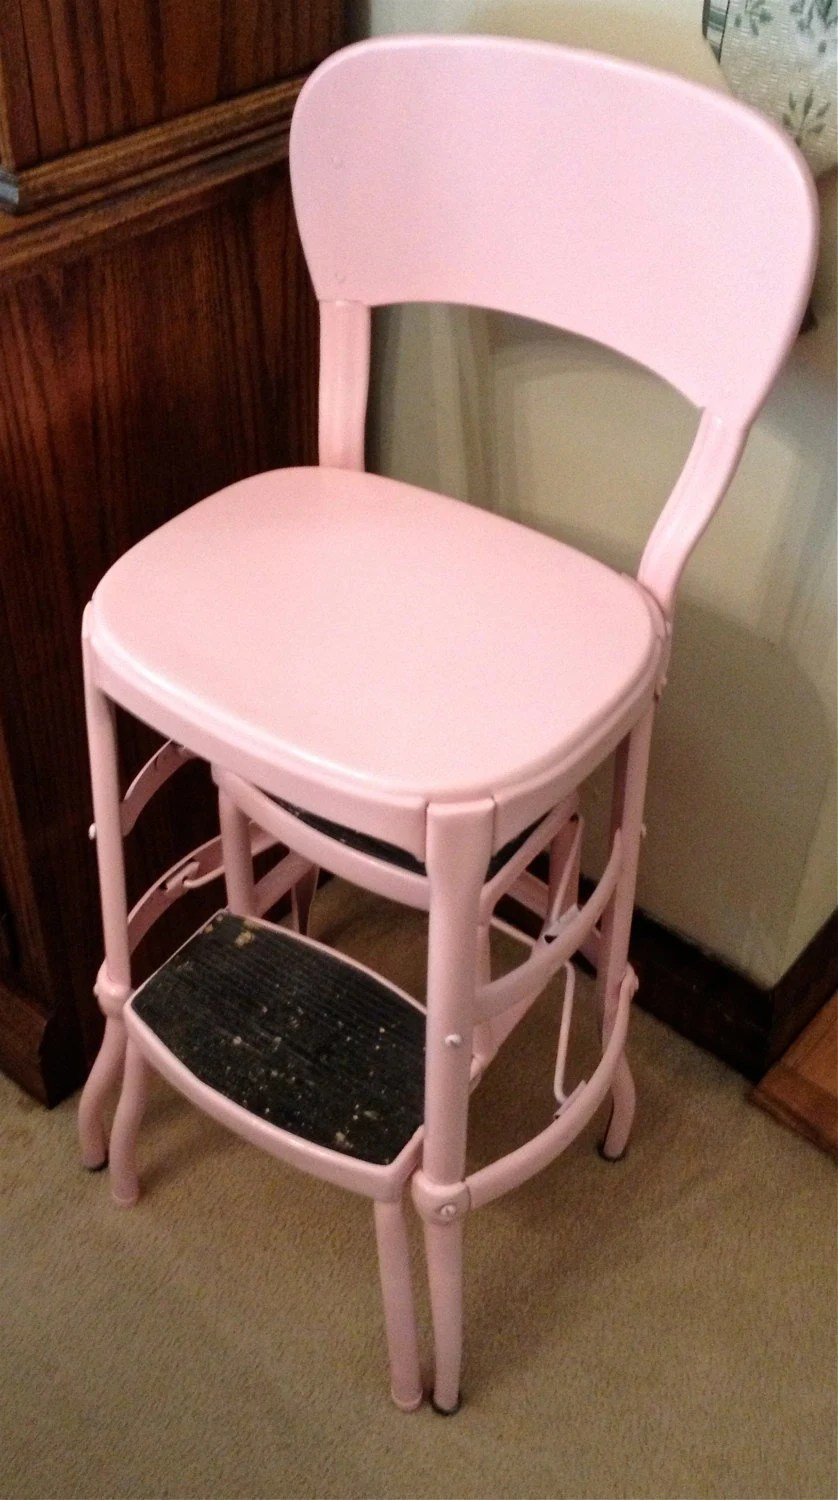 vintage kitchen step stool chair cabinet design pink costco stepstool local pick up only